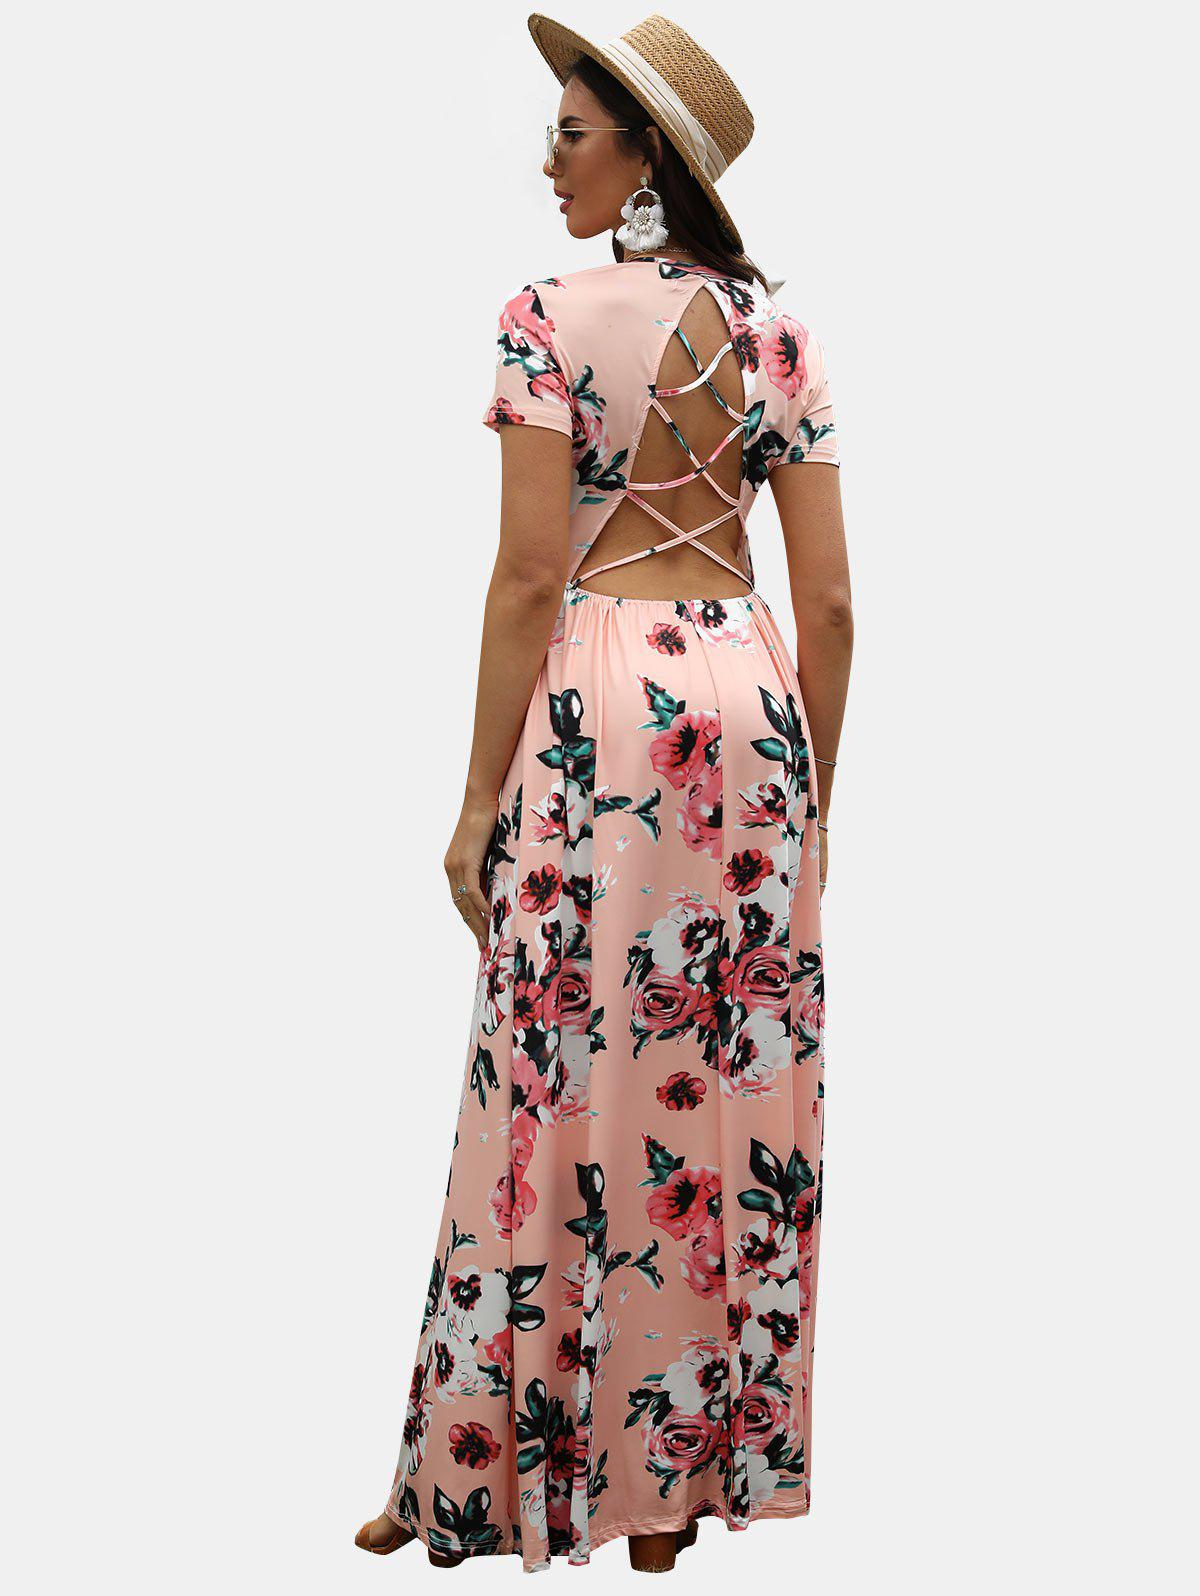 Floral Print Criss-cross Backless Maxi Dress - PINK M